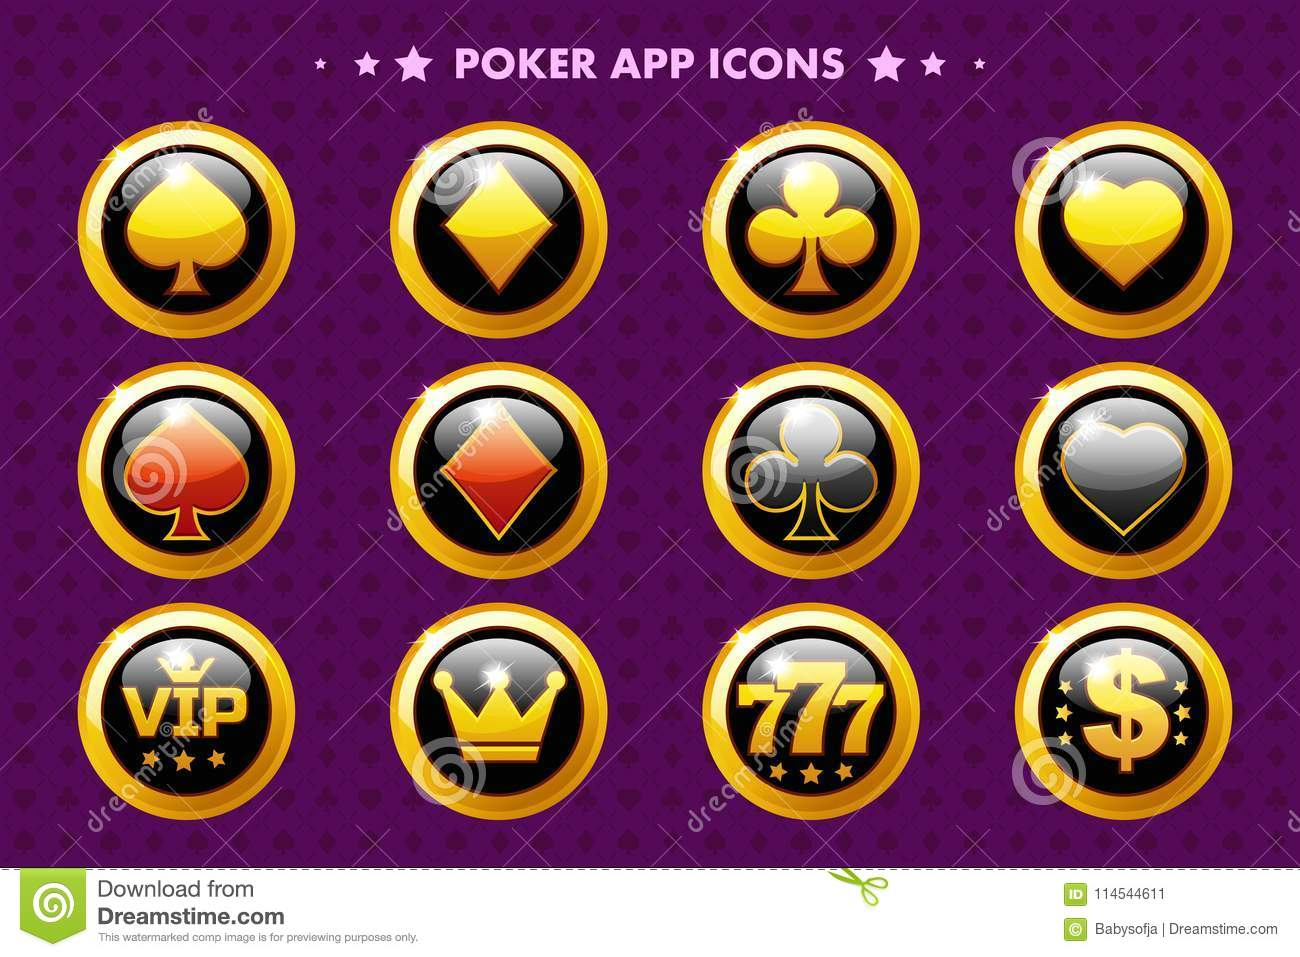 Casino And Poker Golden App Icon Glossy Objects For Asset Game Stock Vector Illustration Of Money Heart 114544611